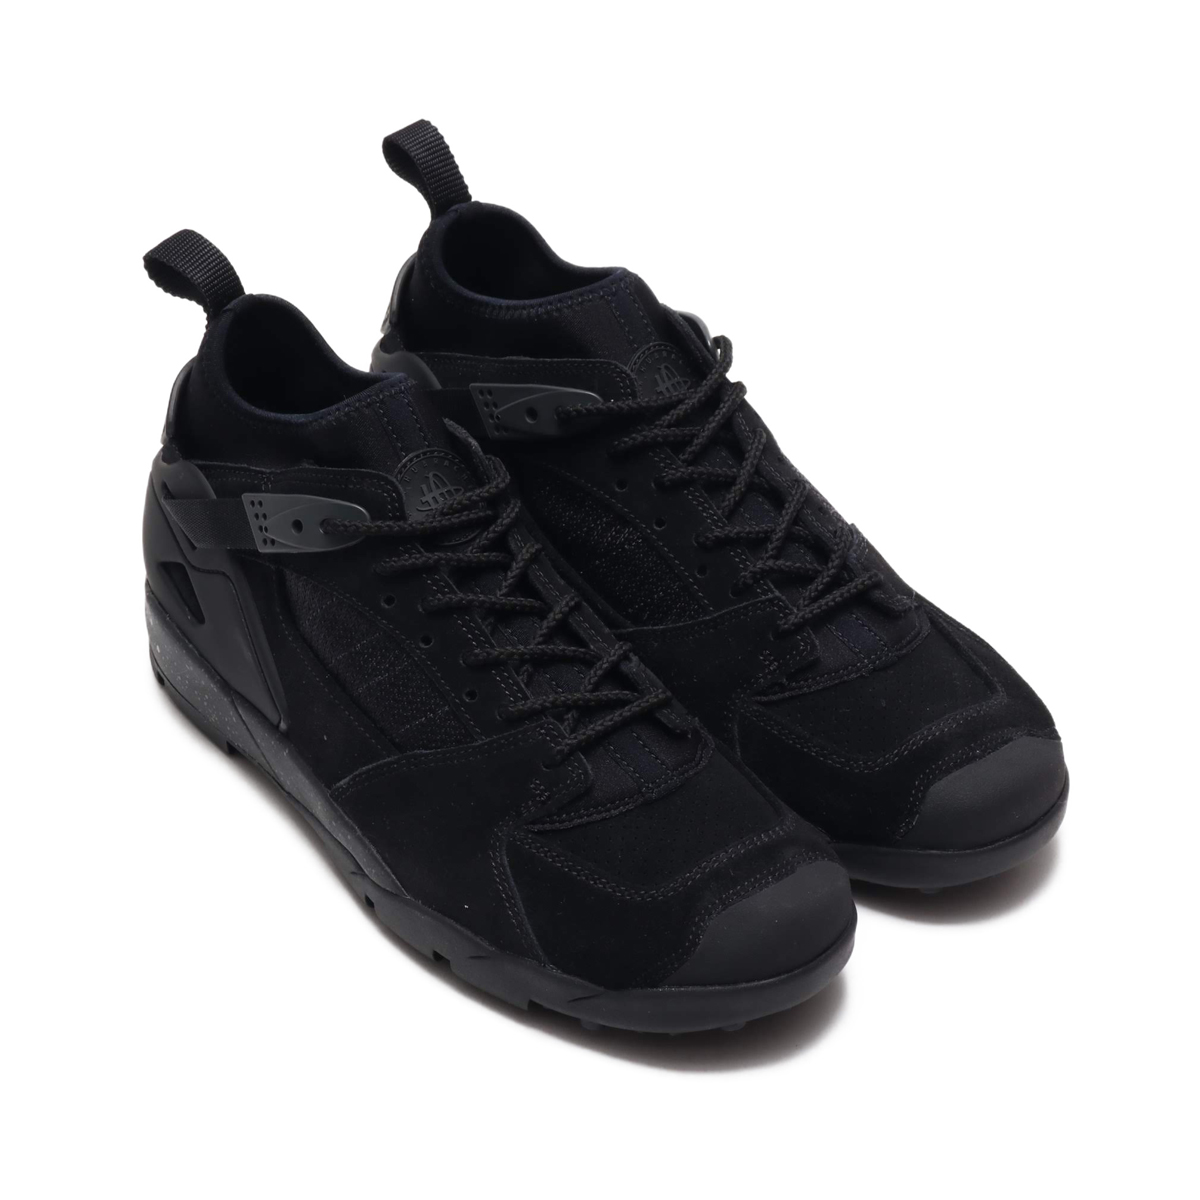 NIKE AIR REVADERCHI(ナイキ エア リバデルチ)(BLACK/ANTHRACITE-BLACK-BLACK)18FW-S